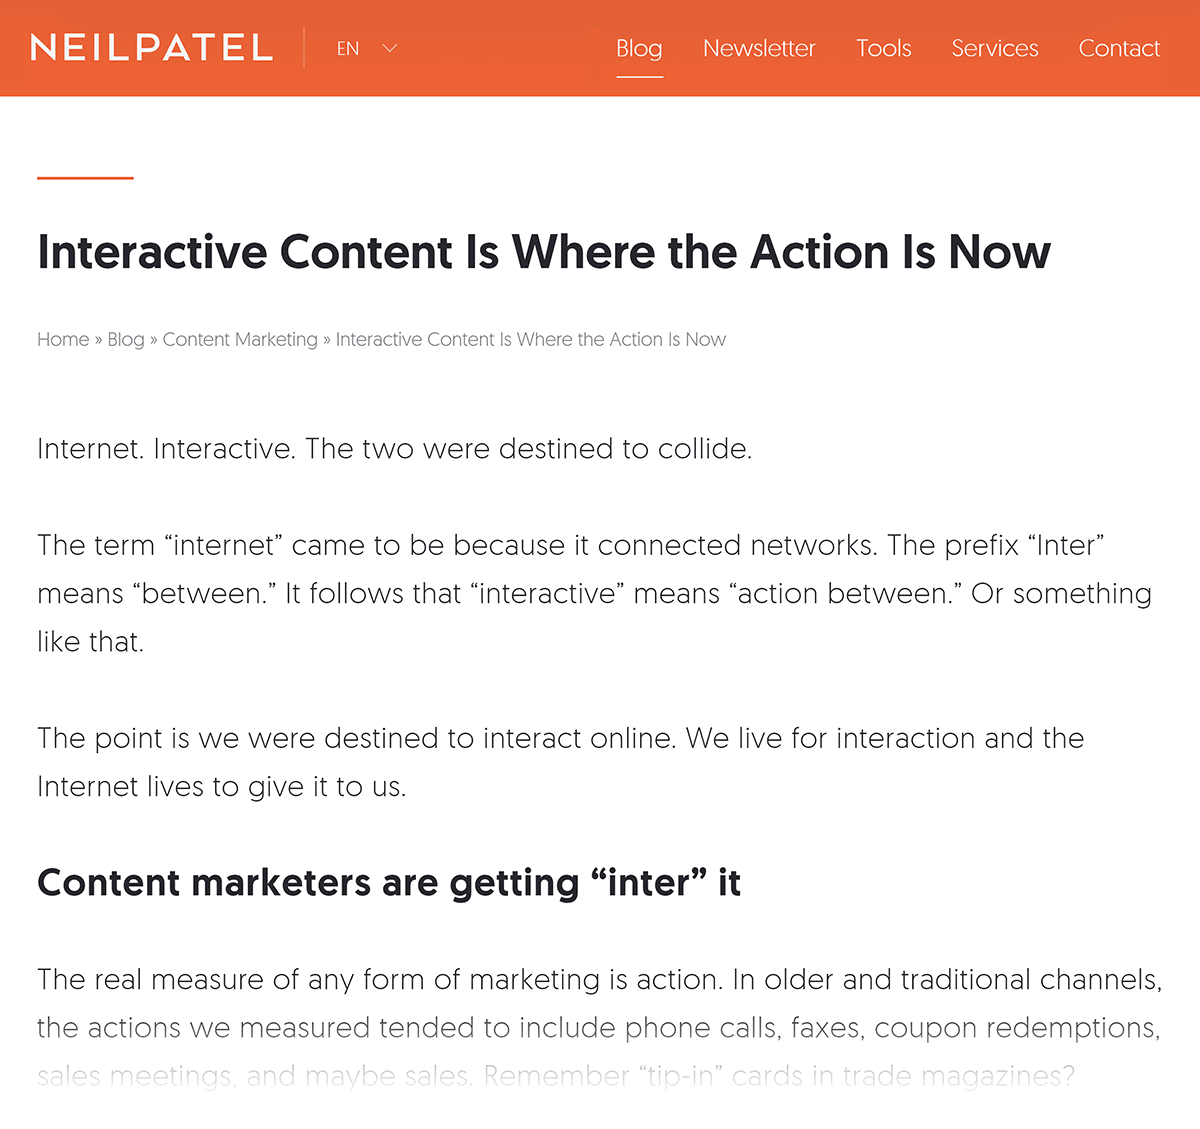 Neil Patel on interactive content